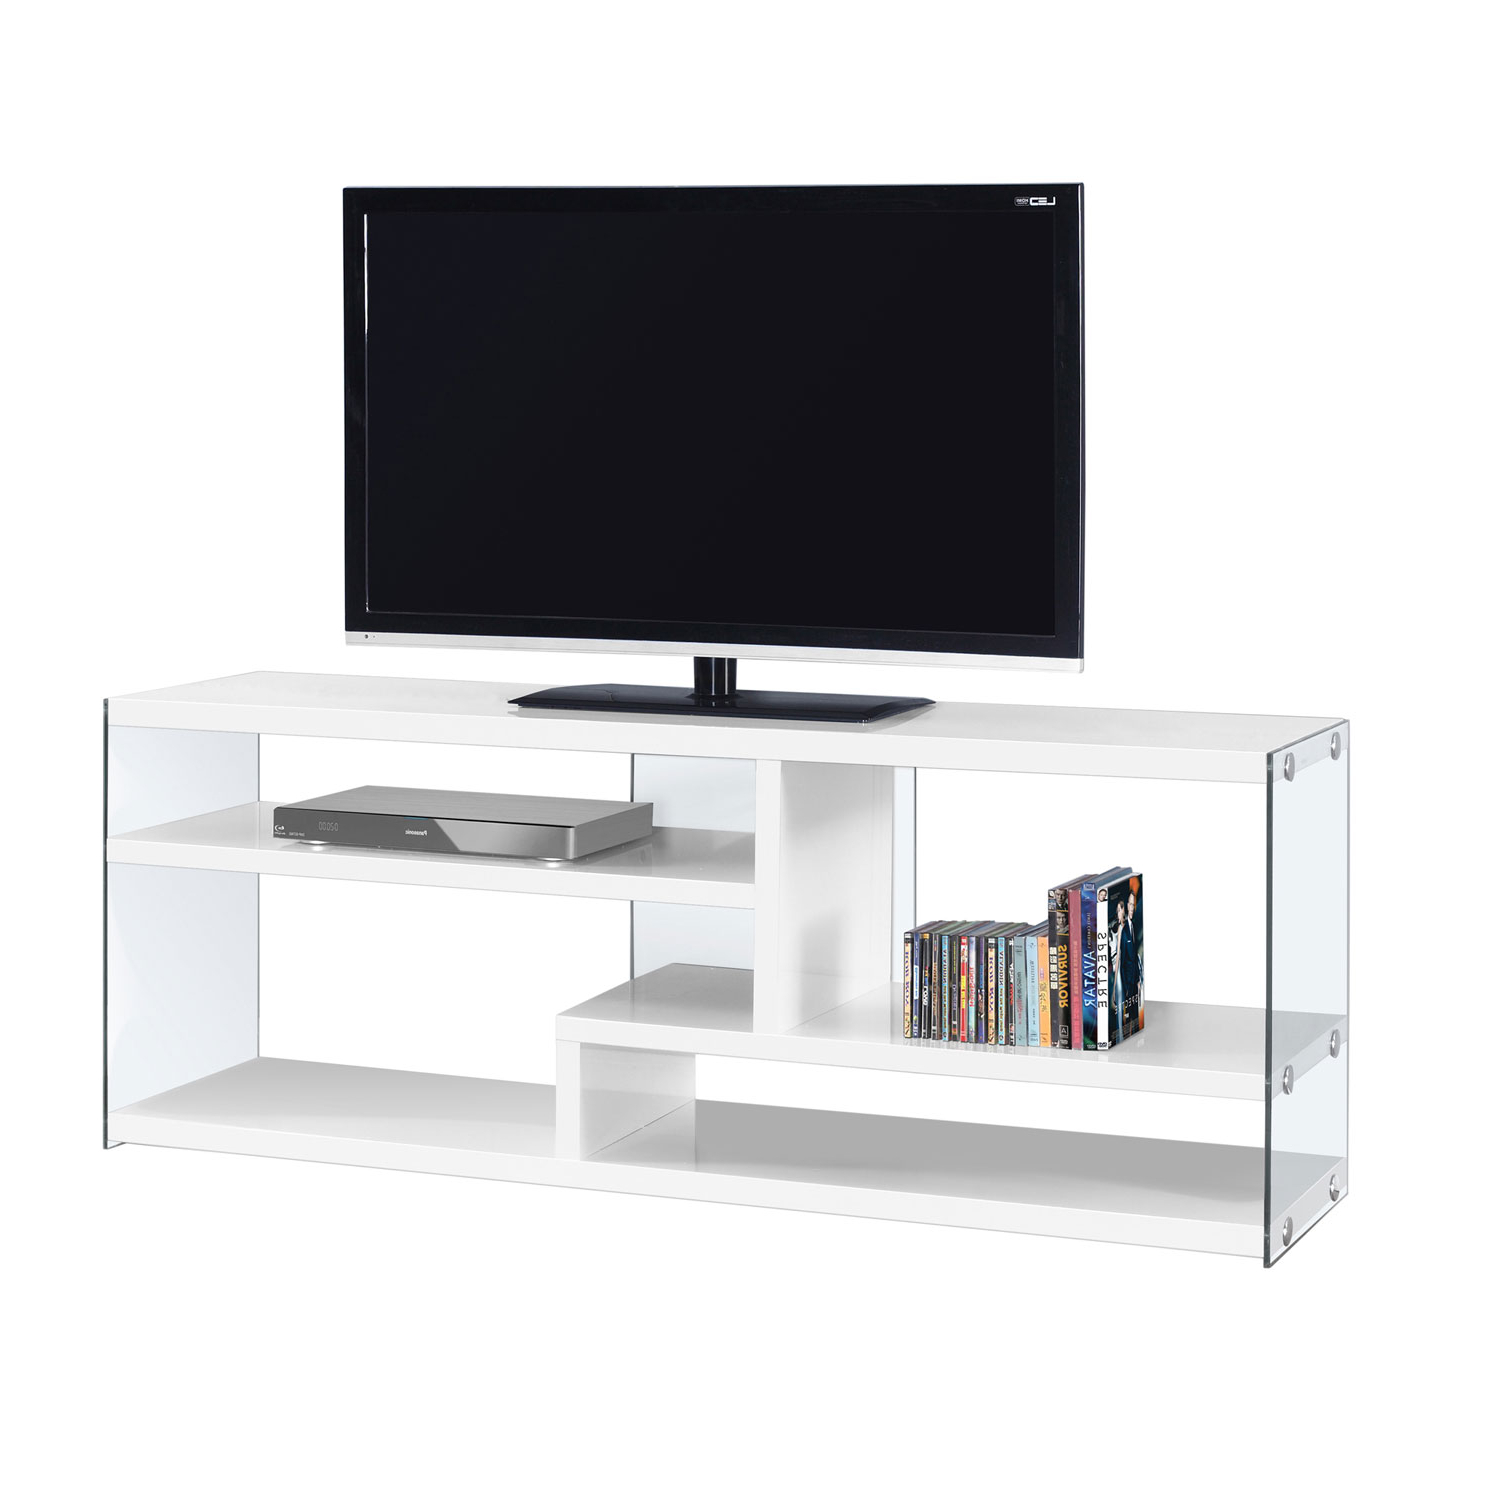 2018 Hawthorne Ave Tv Stand 60L / Glossy White With Tempered Glass I 2690 Inside Noah 75 Inch Tv Stands (View 1 of 20)